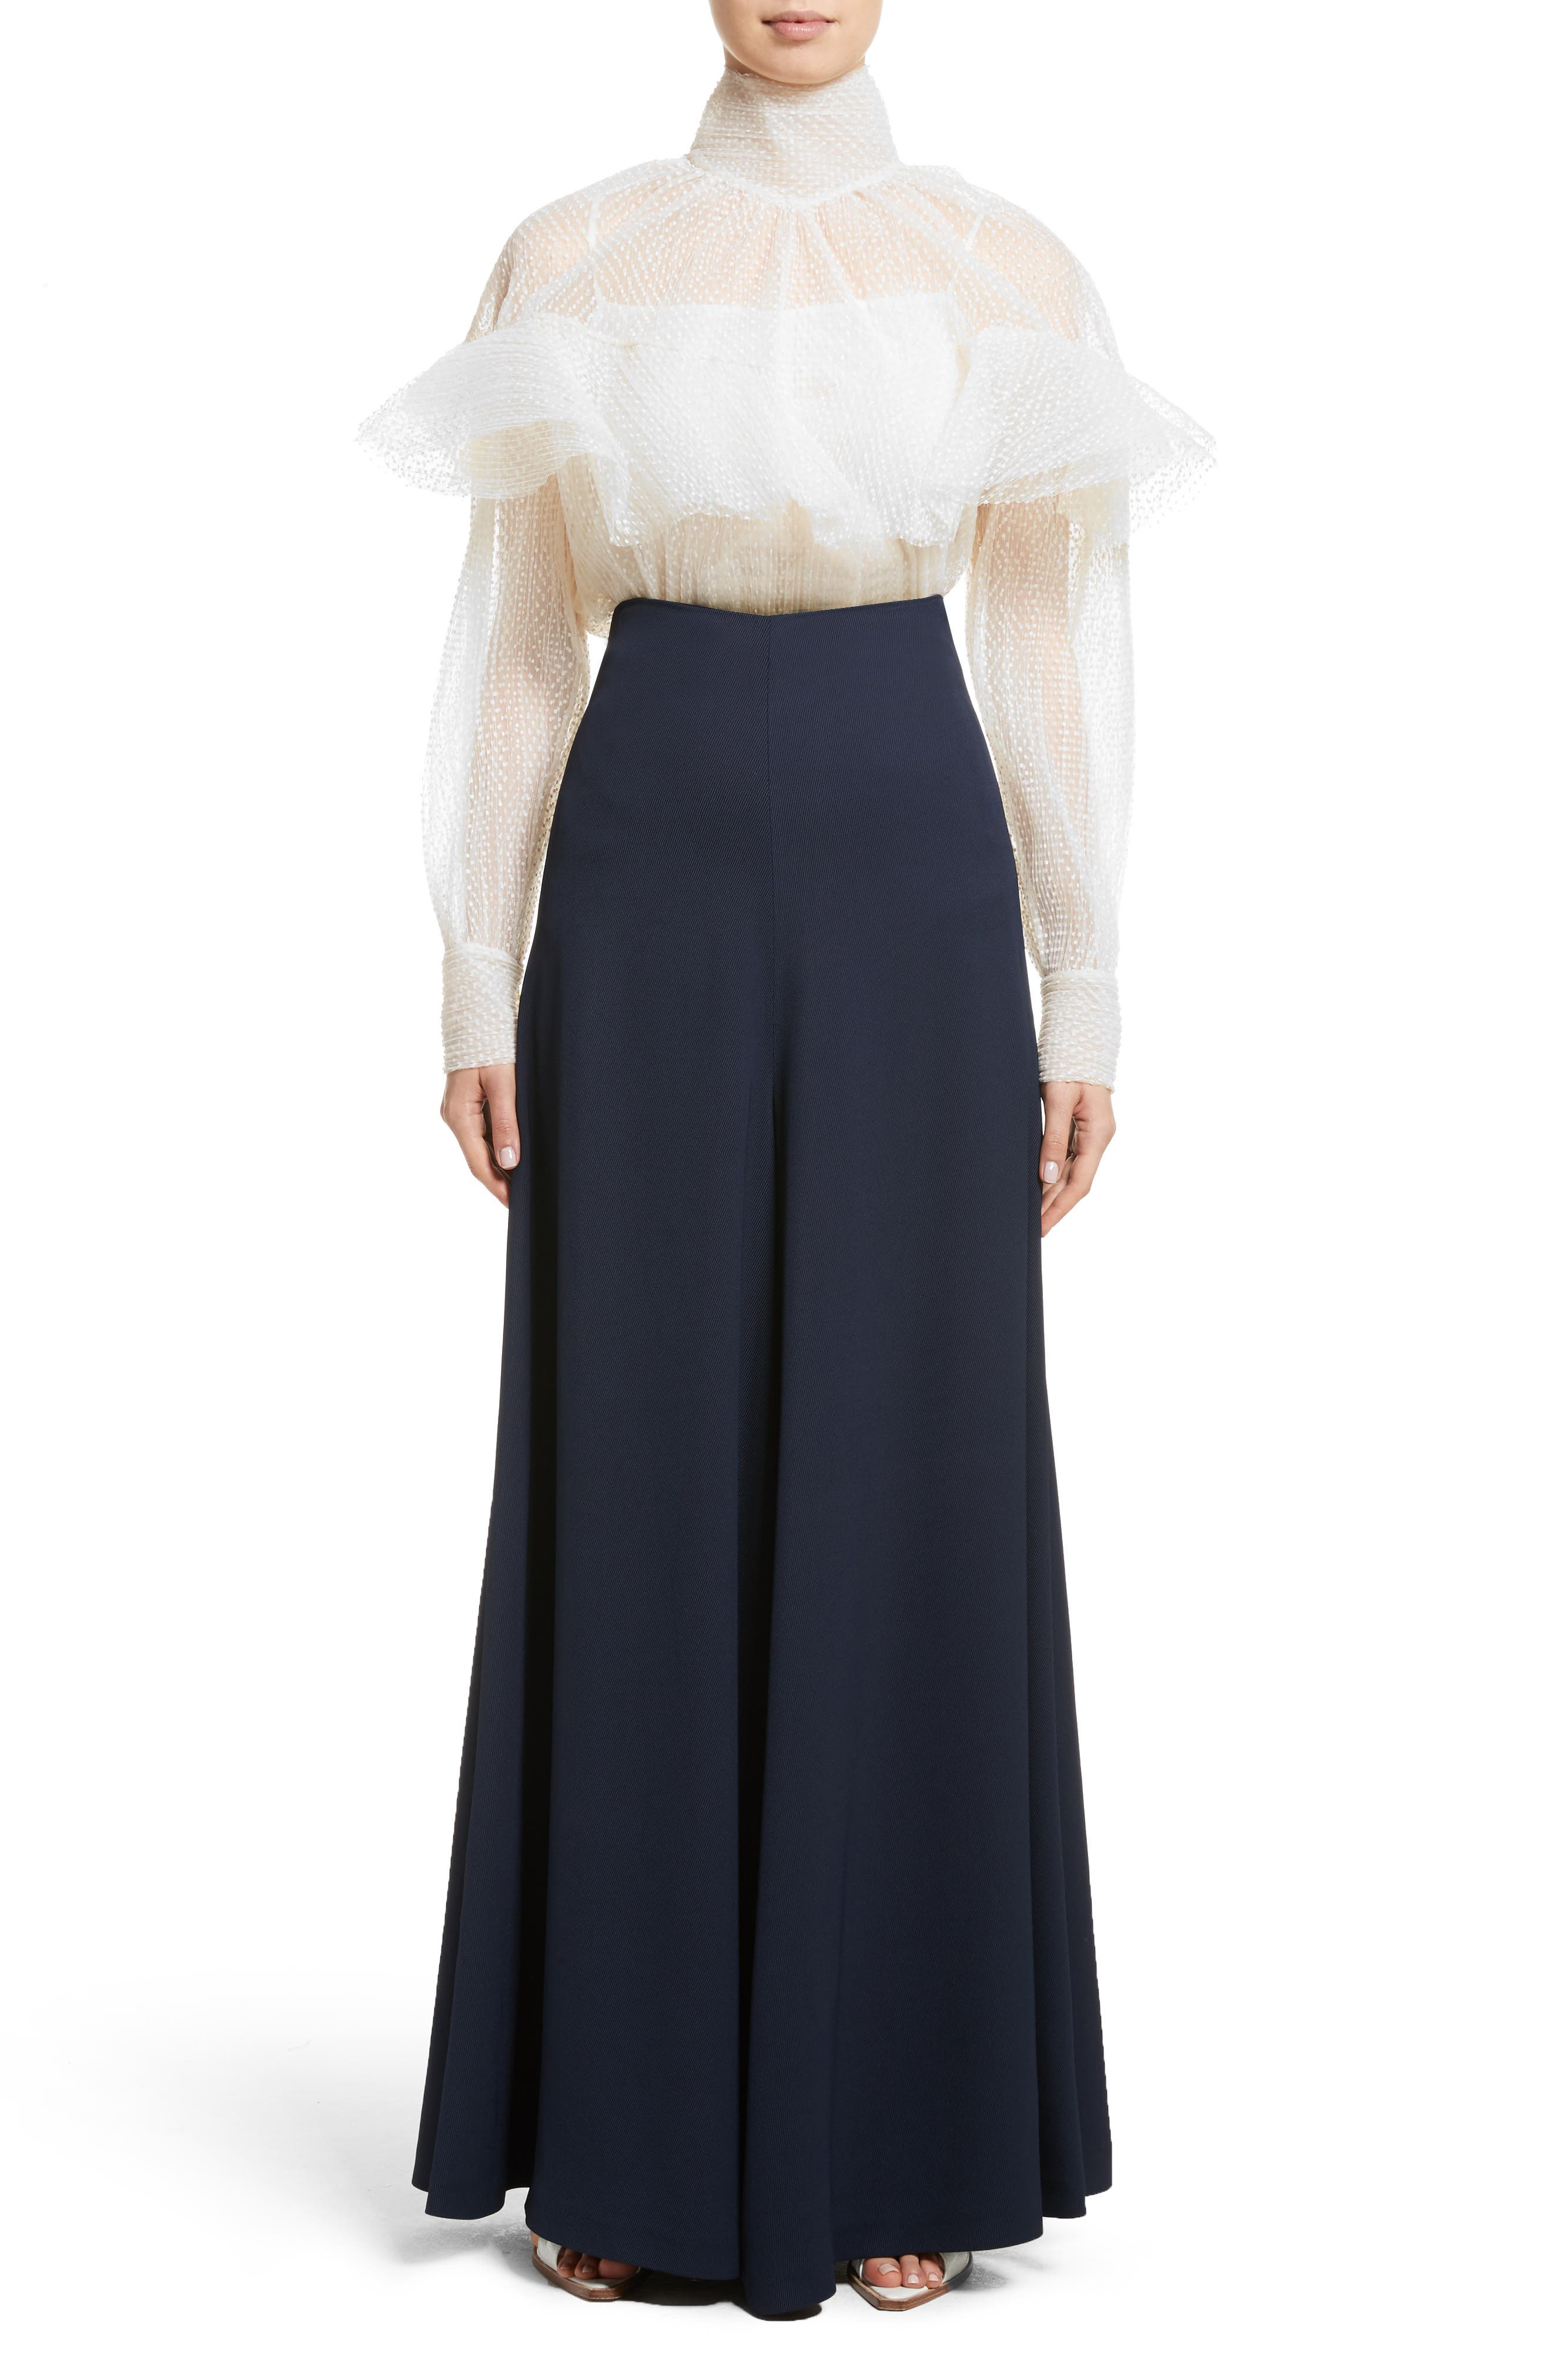 A.W.A.K.E Frill Double Layered Tulle Top,                             Alternate thumbnail 7, color,                             900